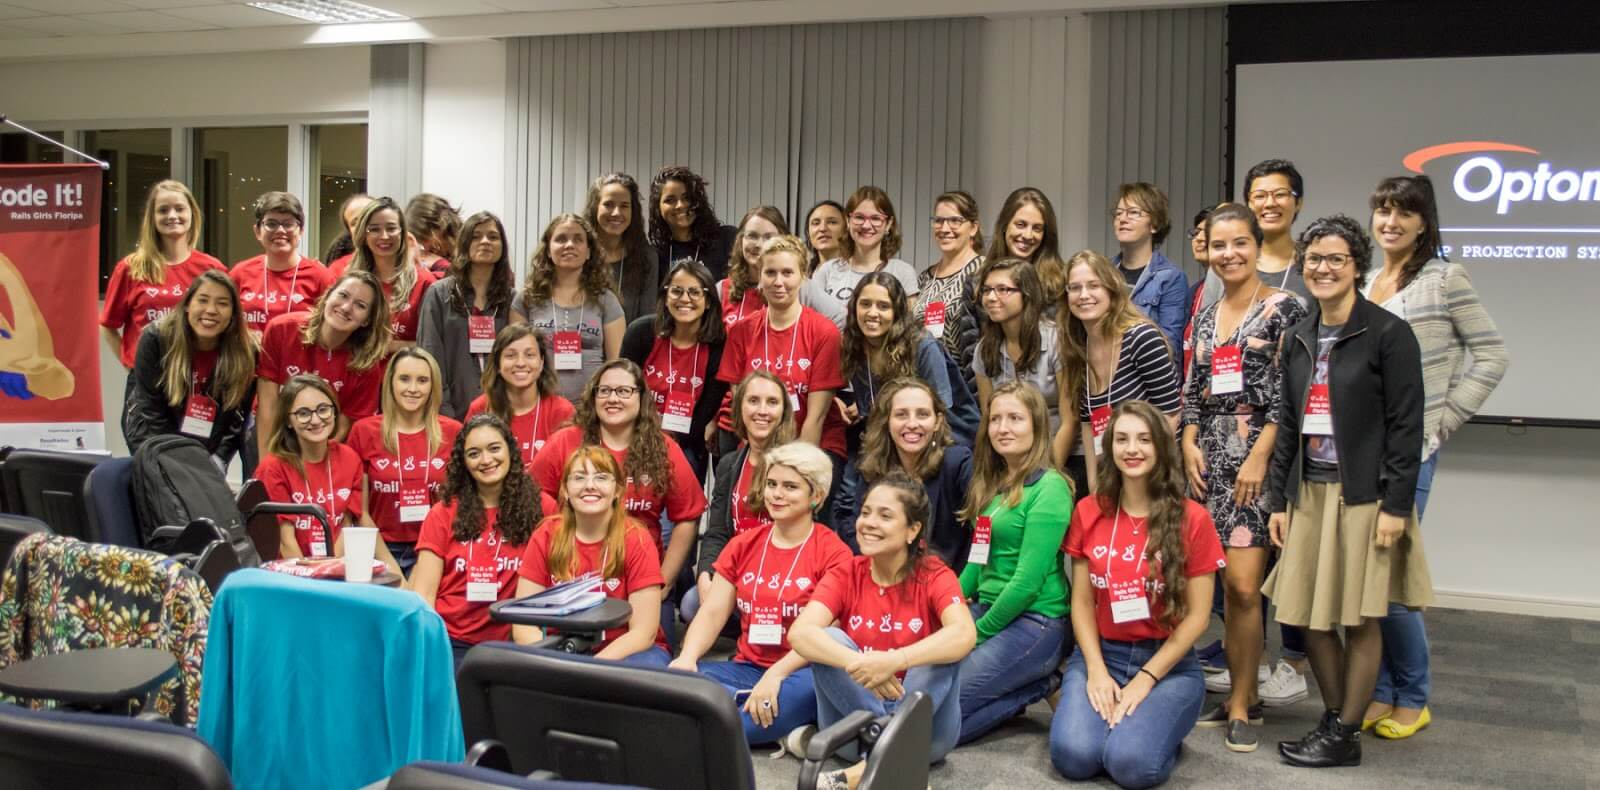 Rails Girls Floripa 2016